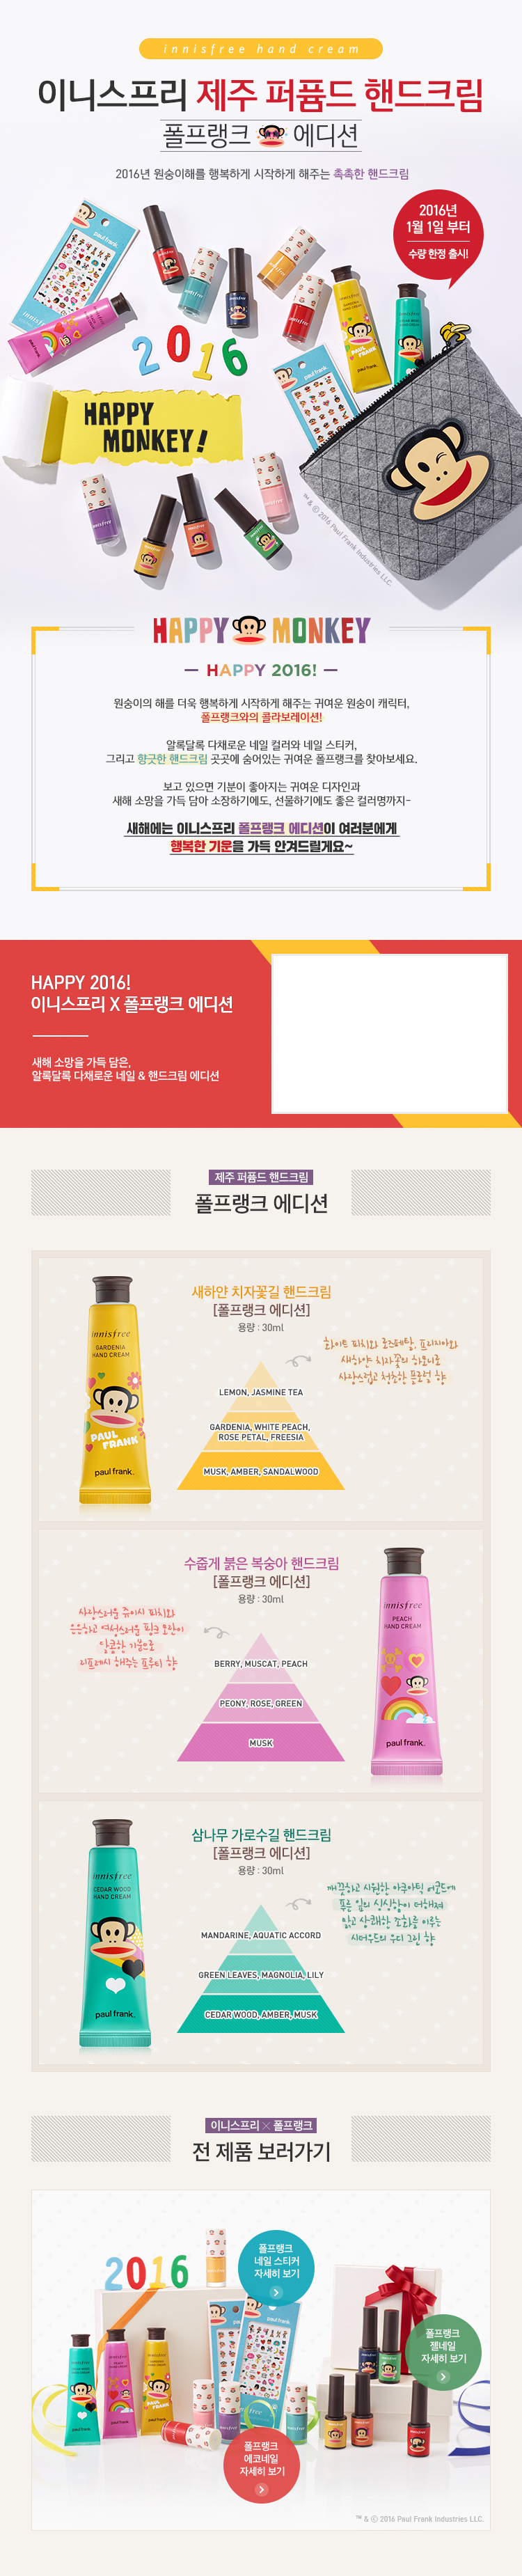 innisfree-jeju-perfumed-paul-frank-edition-hand-cream-desc.jpg